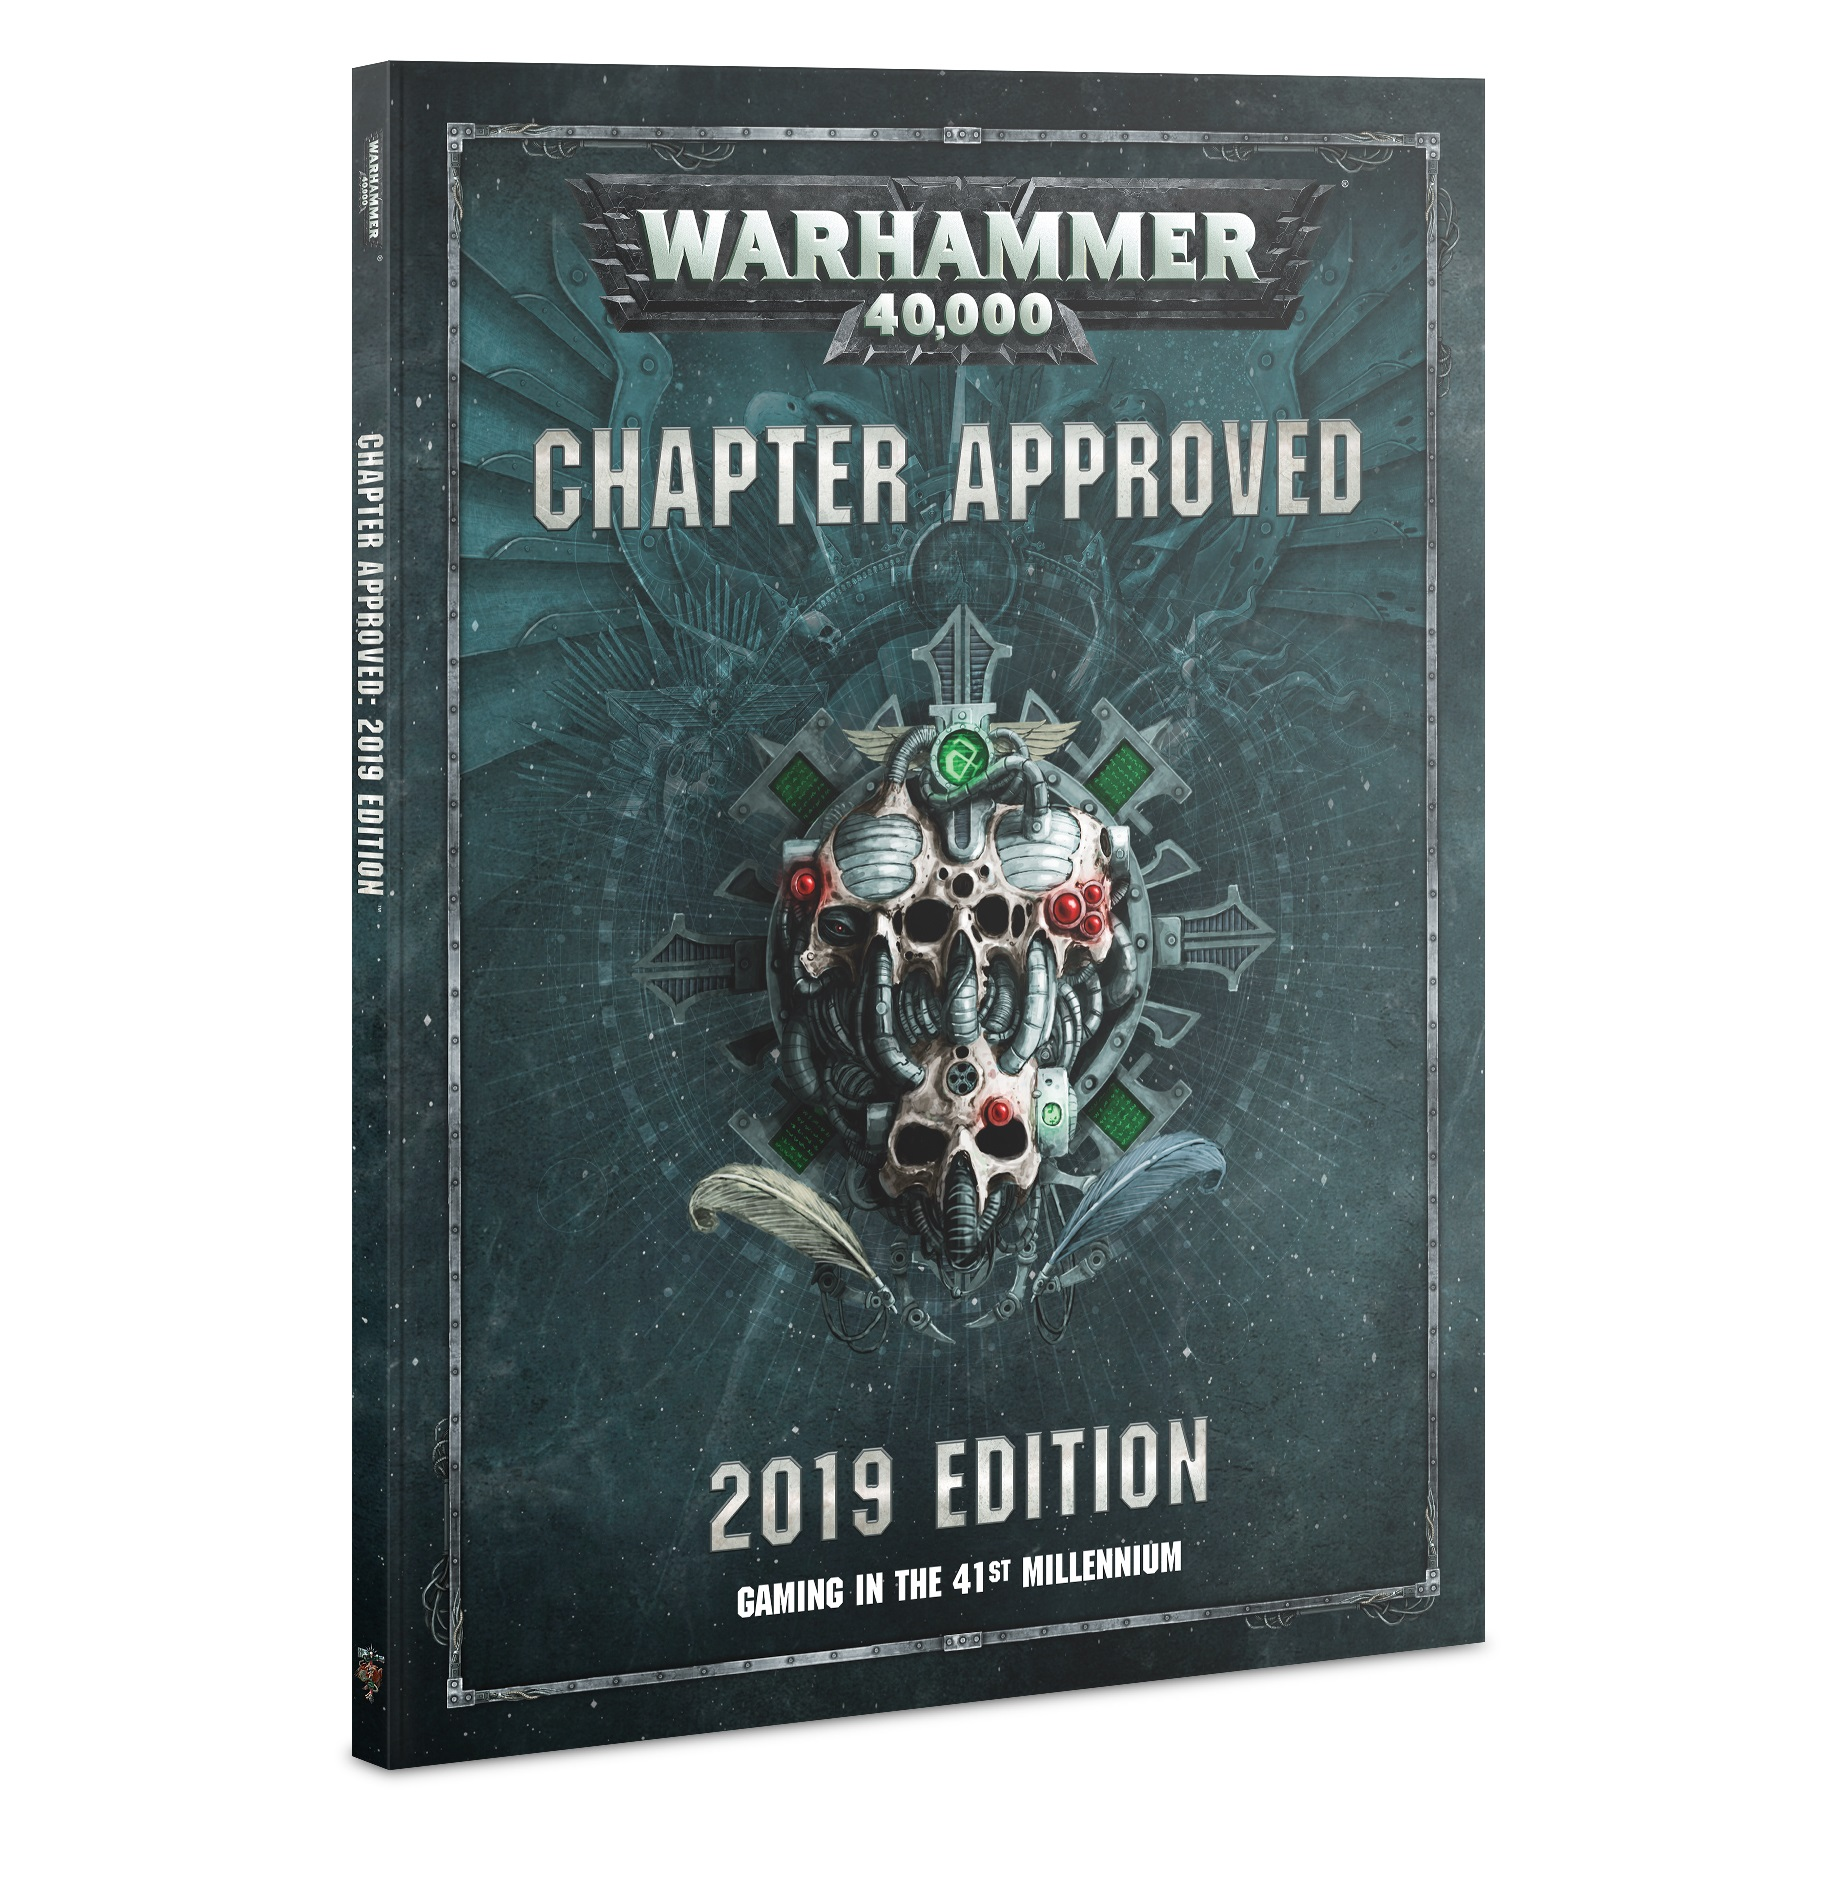 Warhammer 40,000:  Chapter Approved 2019